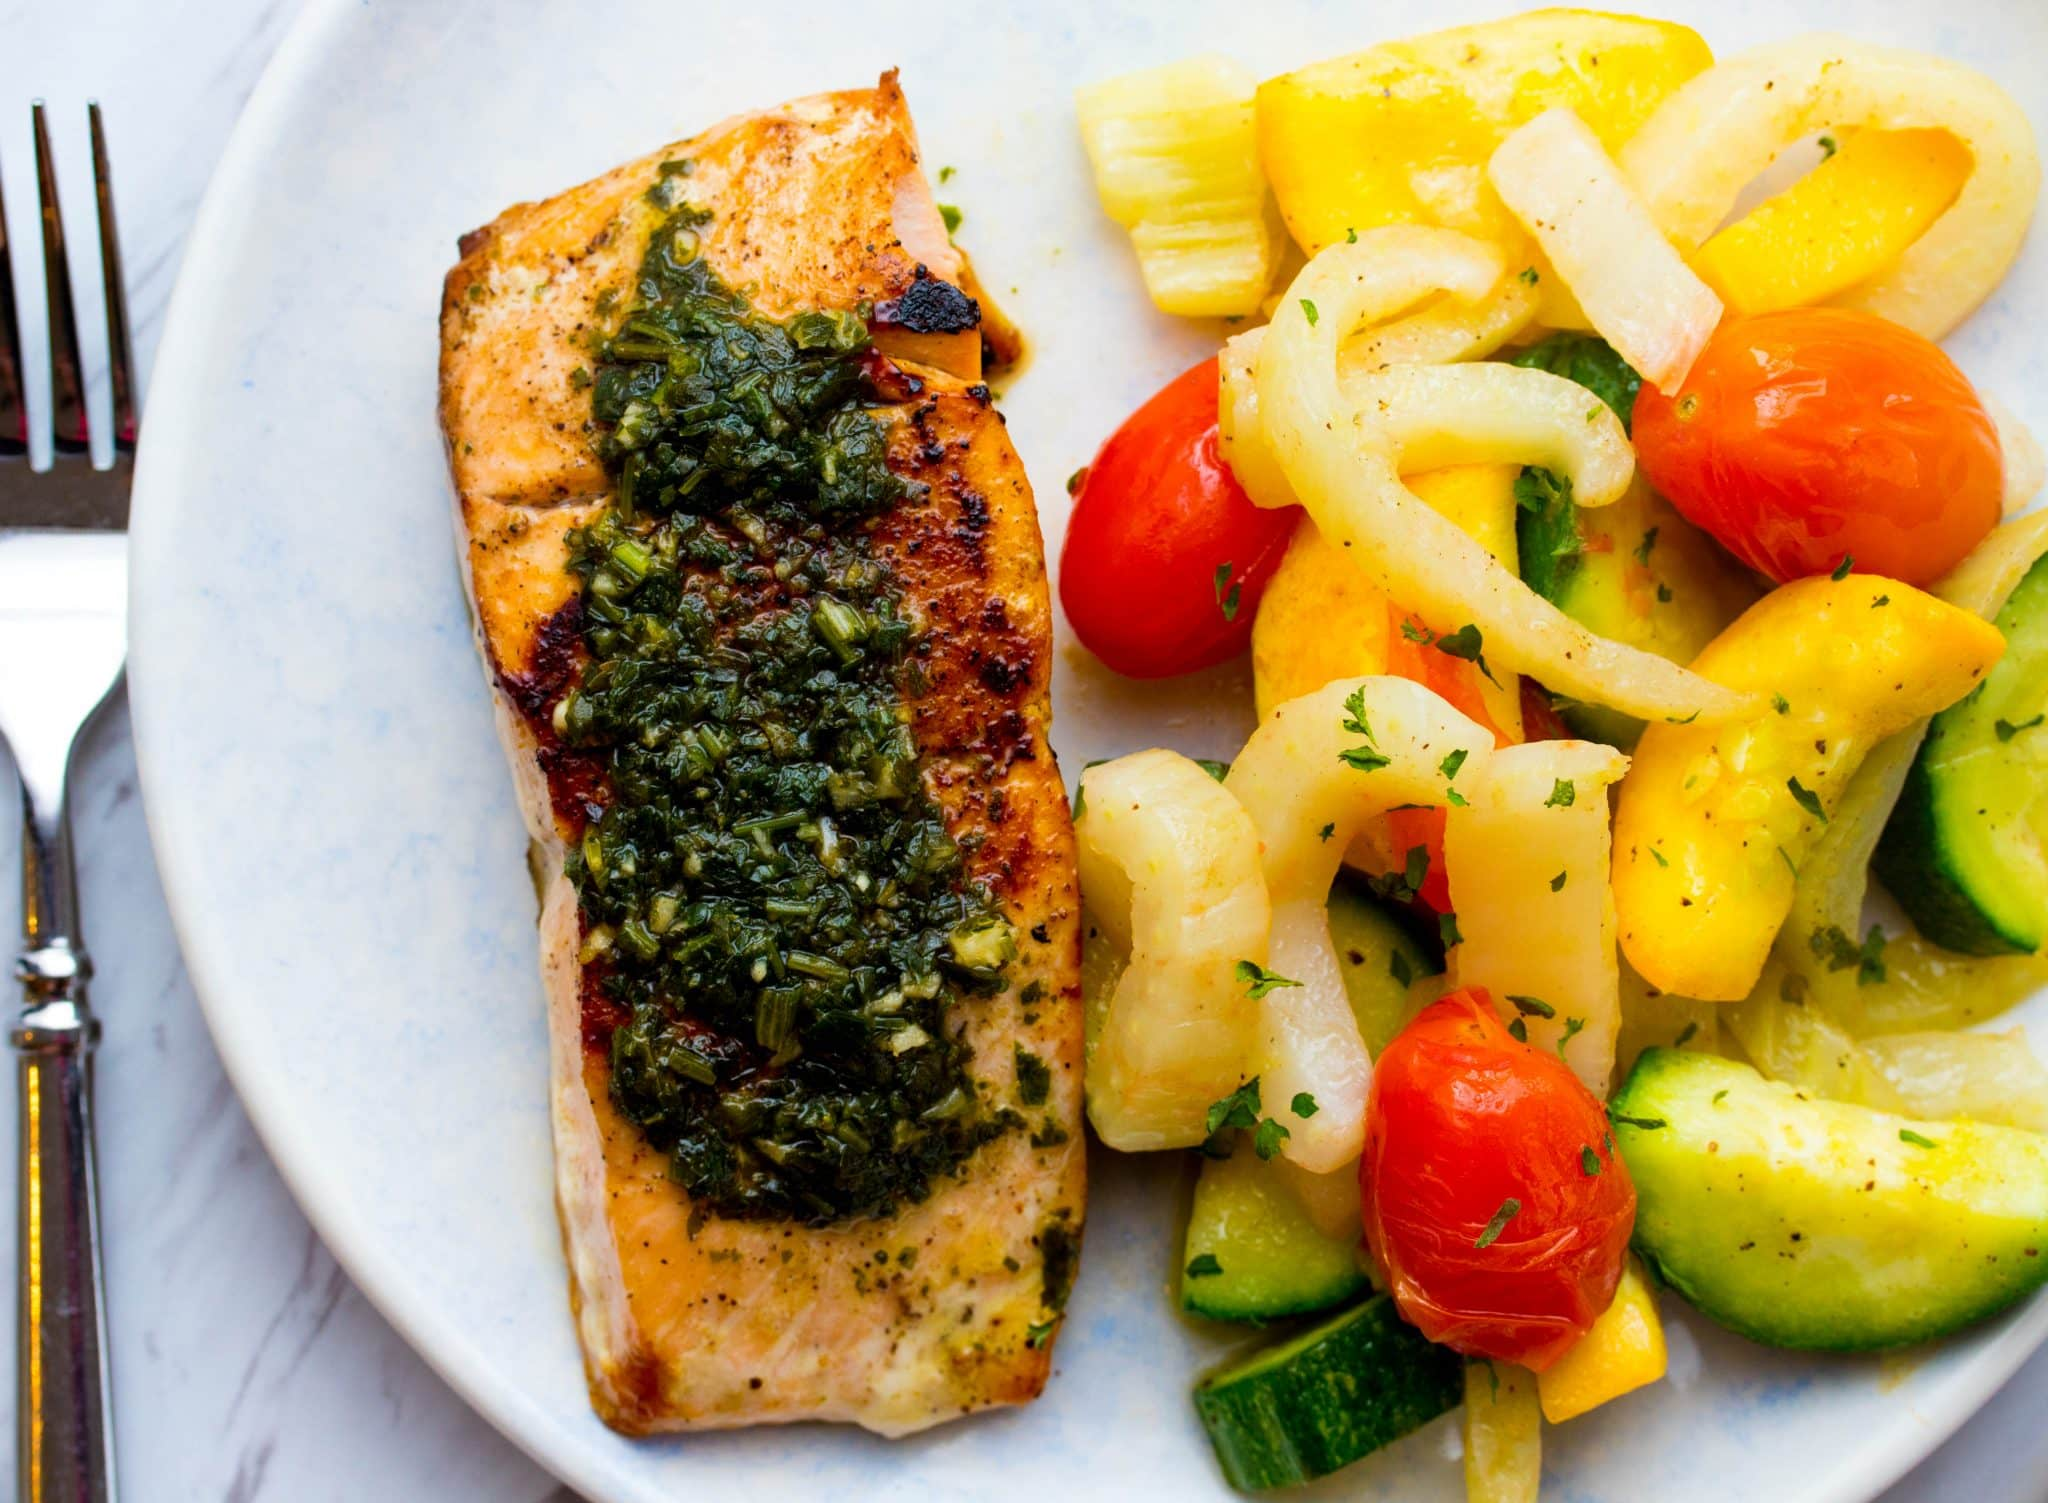 Sun Basket Review Seared Salmon with chimichurri and Provencal vegetables